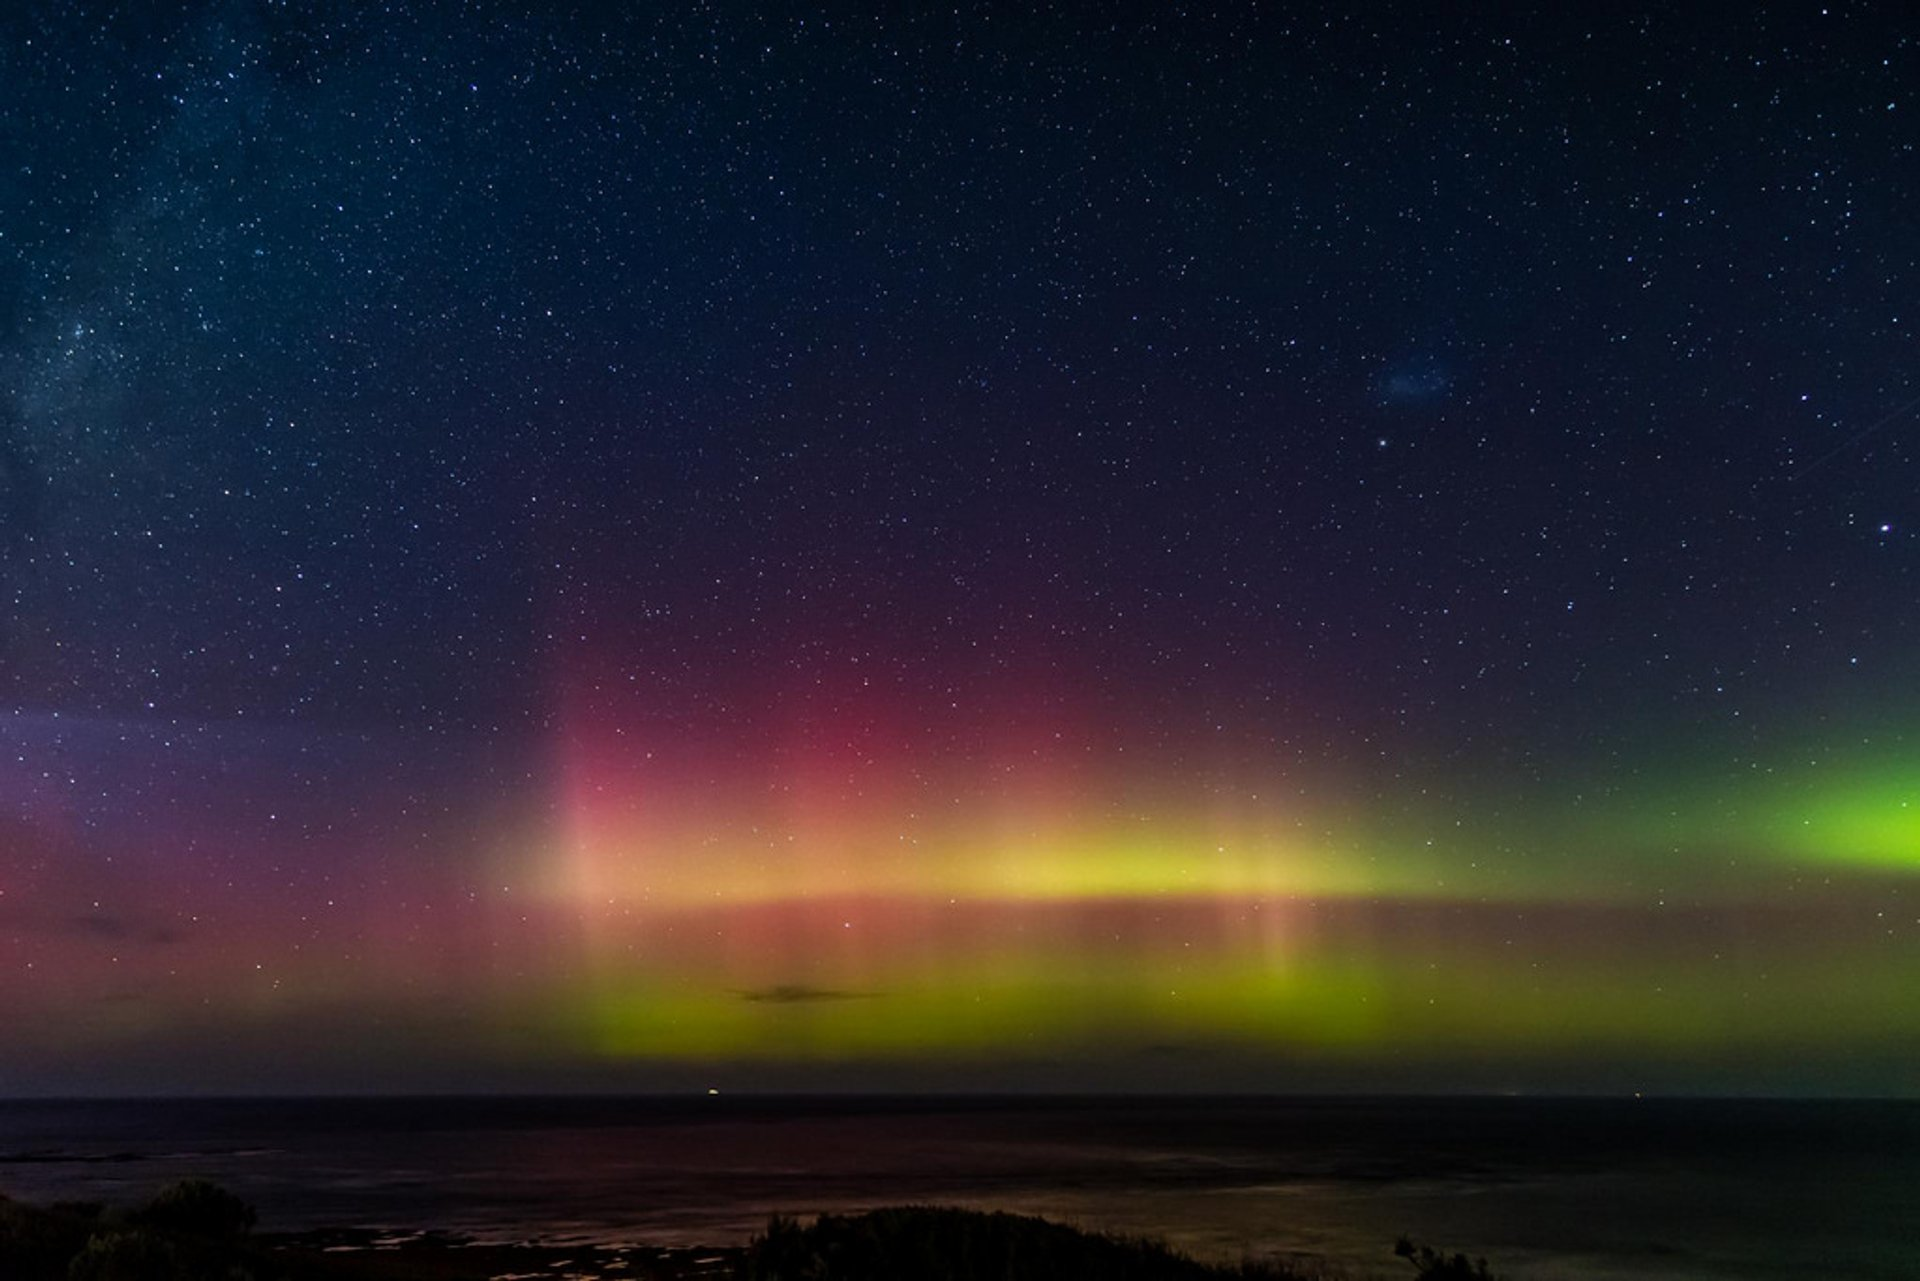 Southern Lights in Australia 2020 - Best Time